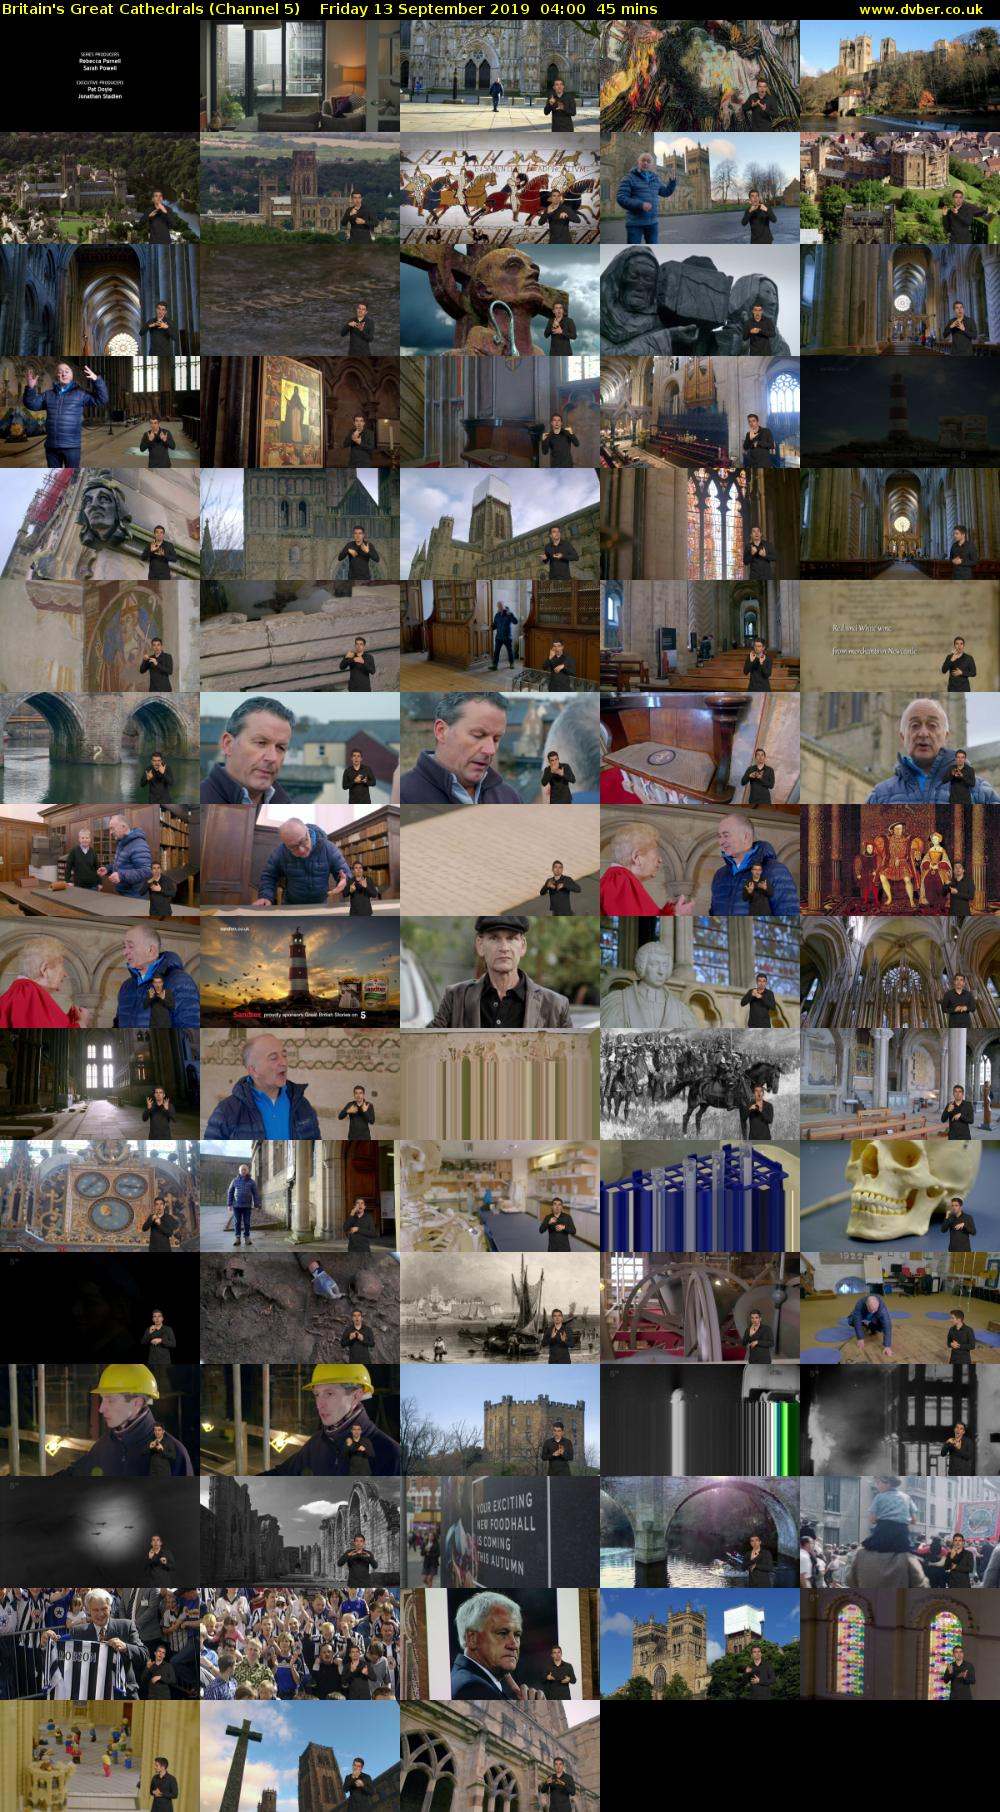 Britain's Great Cathedrals (Channel 5) Friday 13 September 2019 04:00 - 04:45